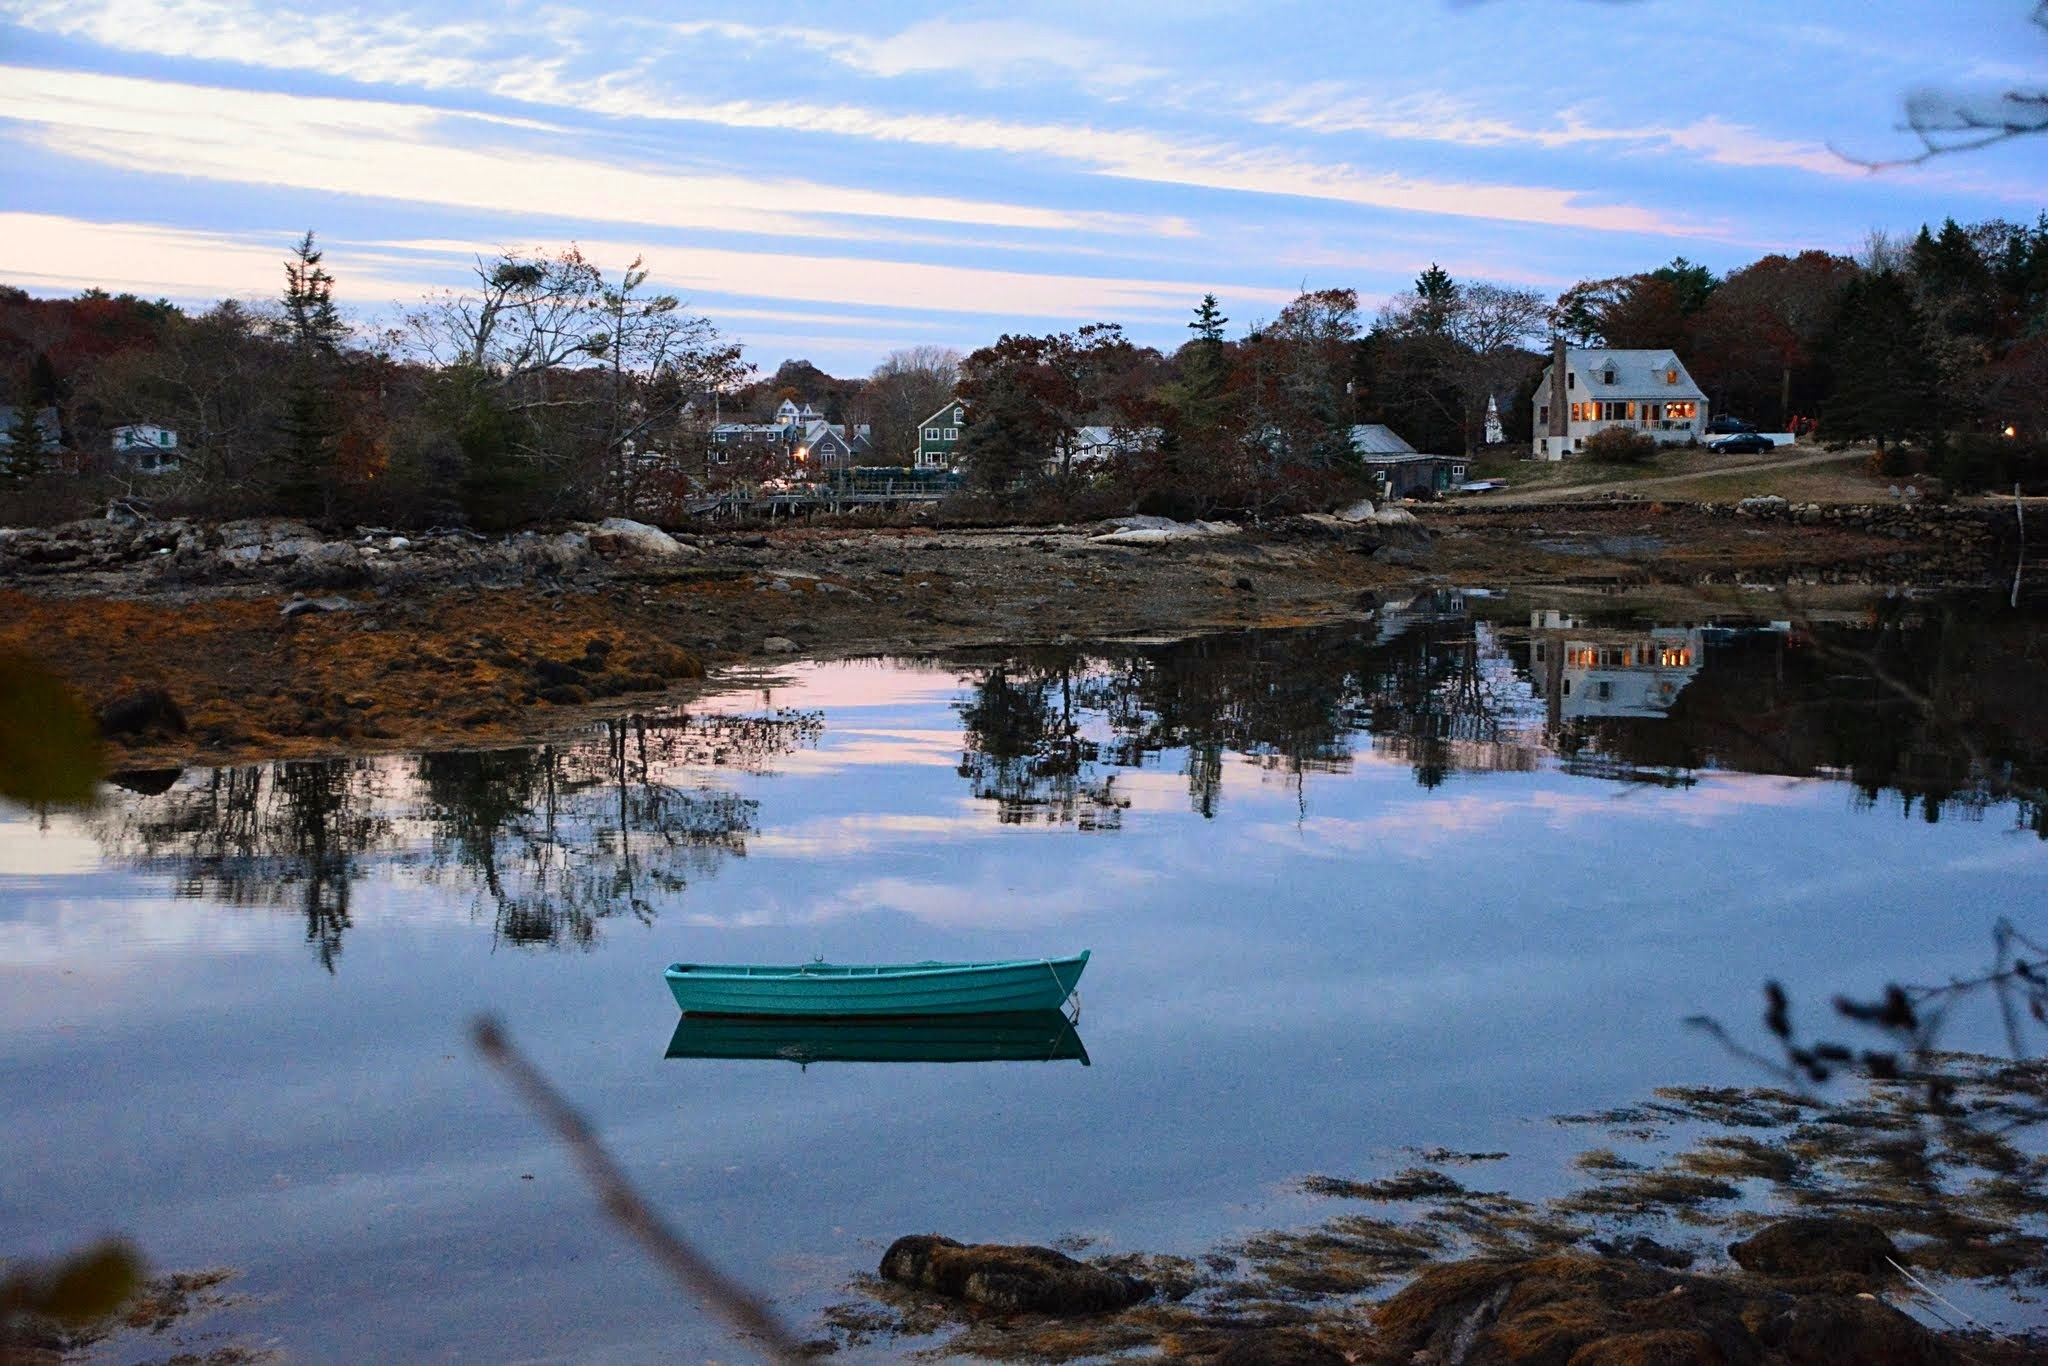 Our rowboat moored in the cove, evening.